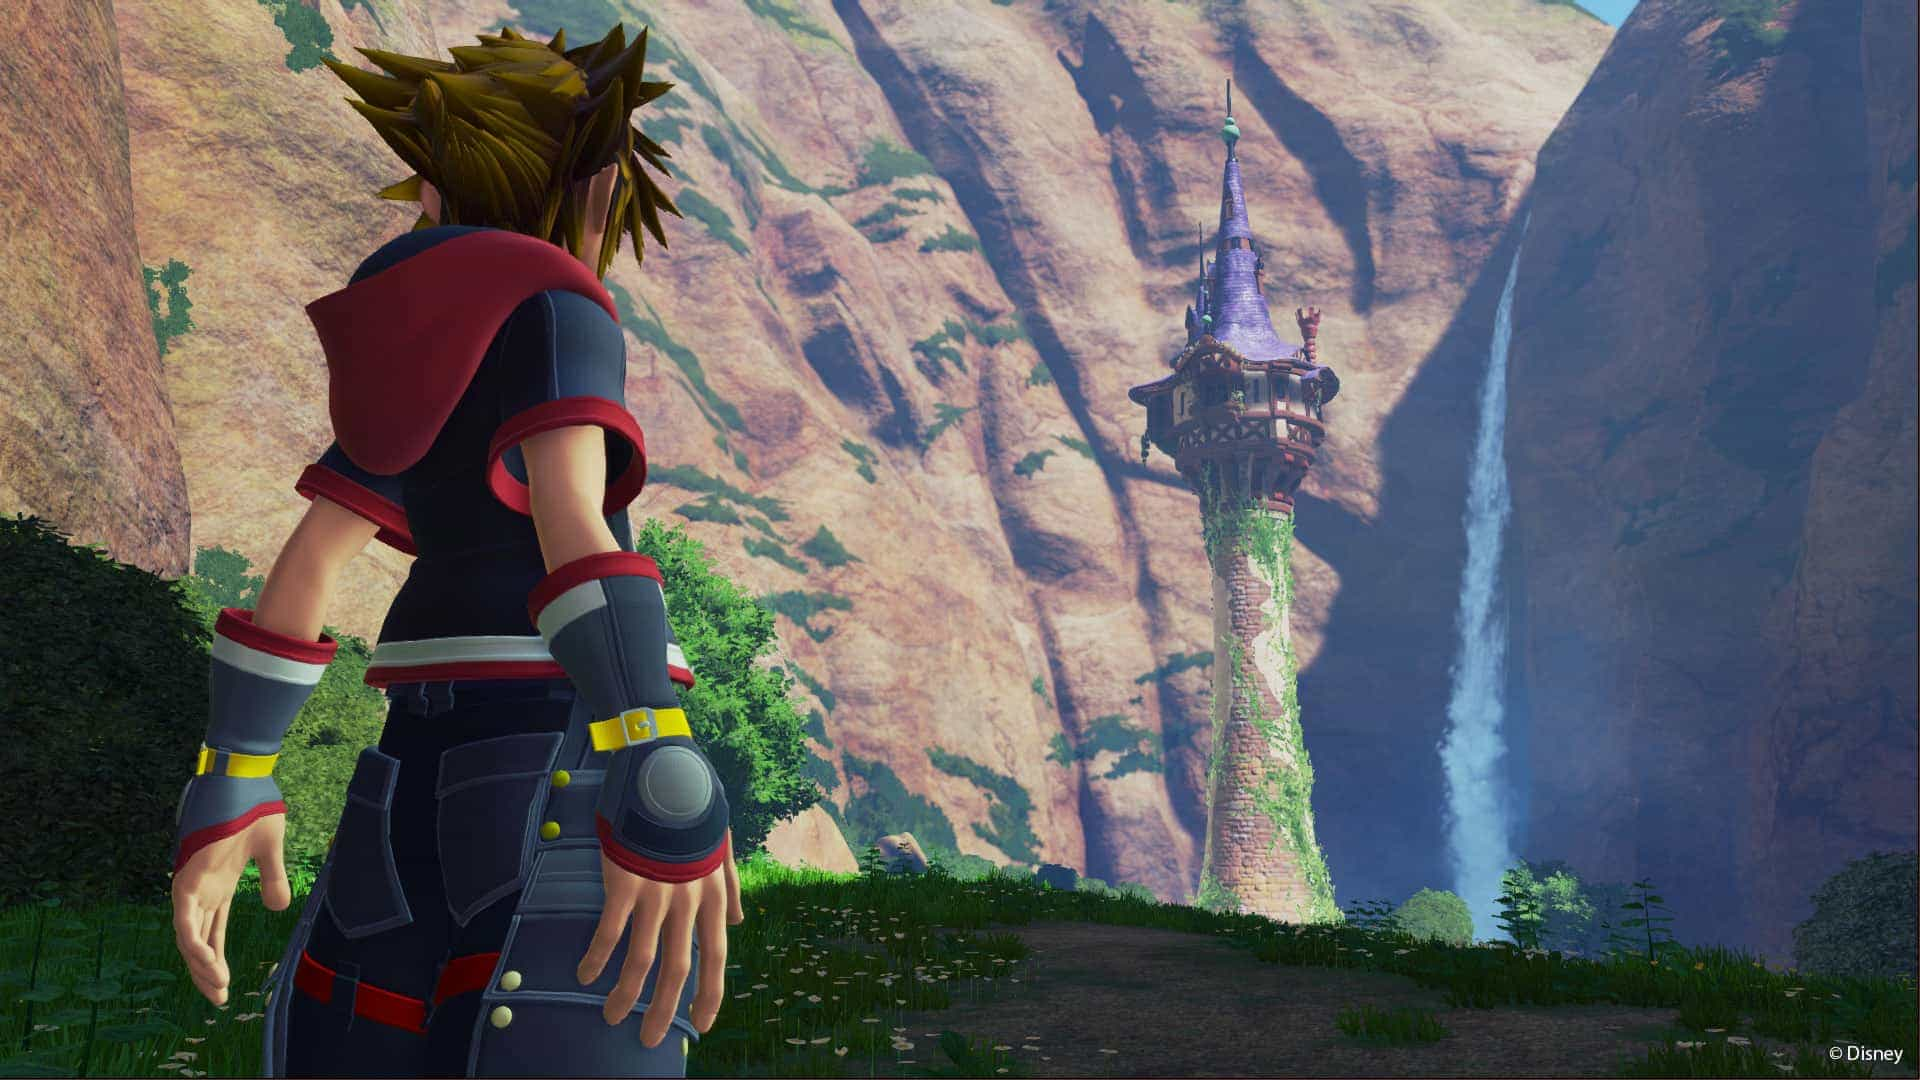 Kingdom Hearts 3 Team Prepared For Additional DLC